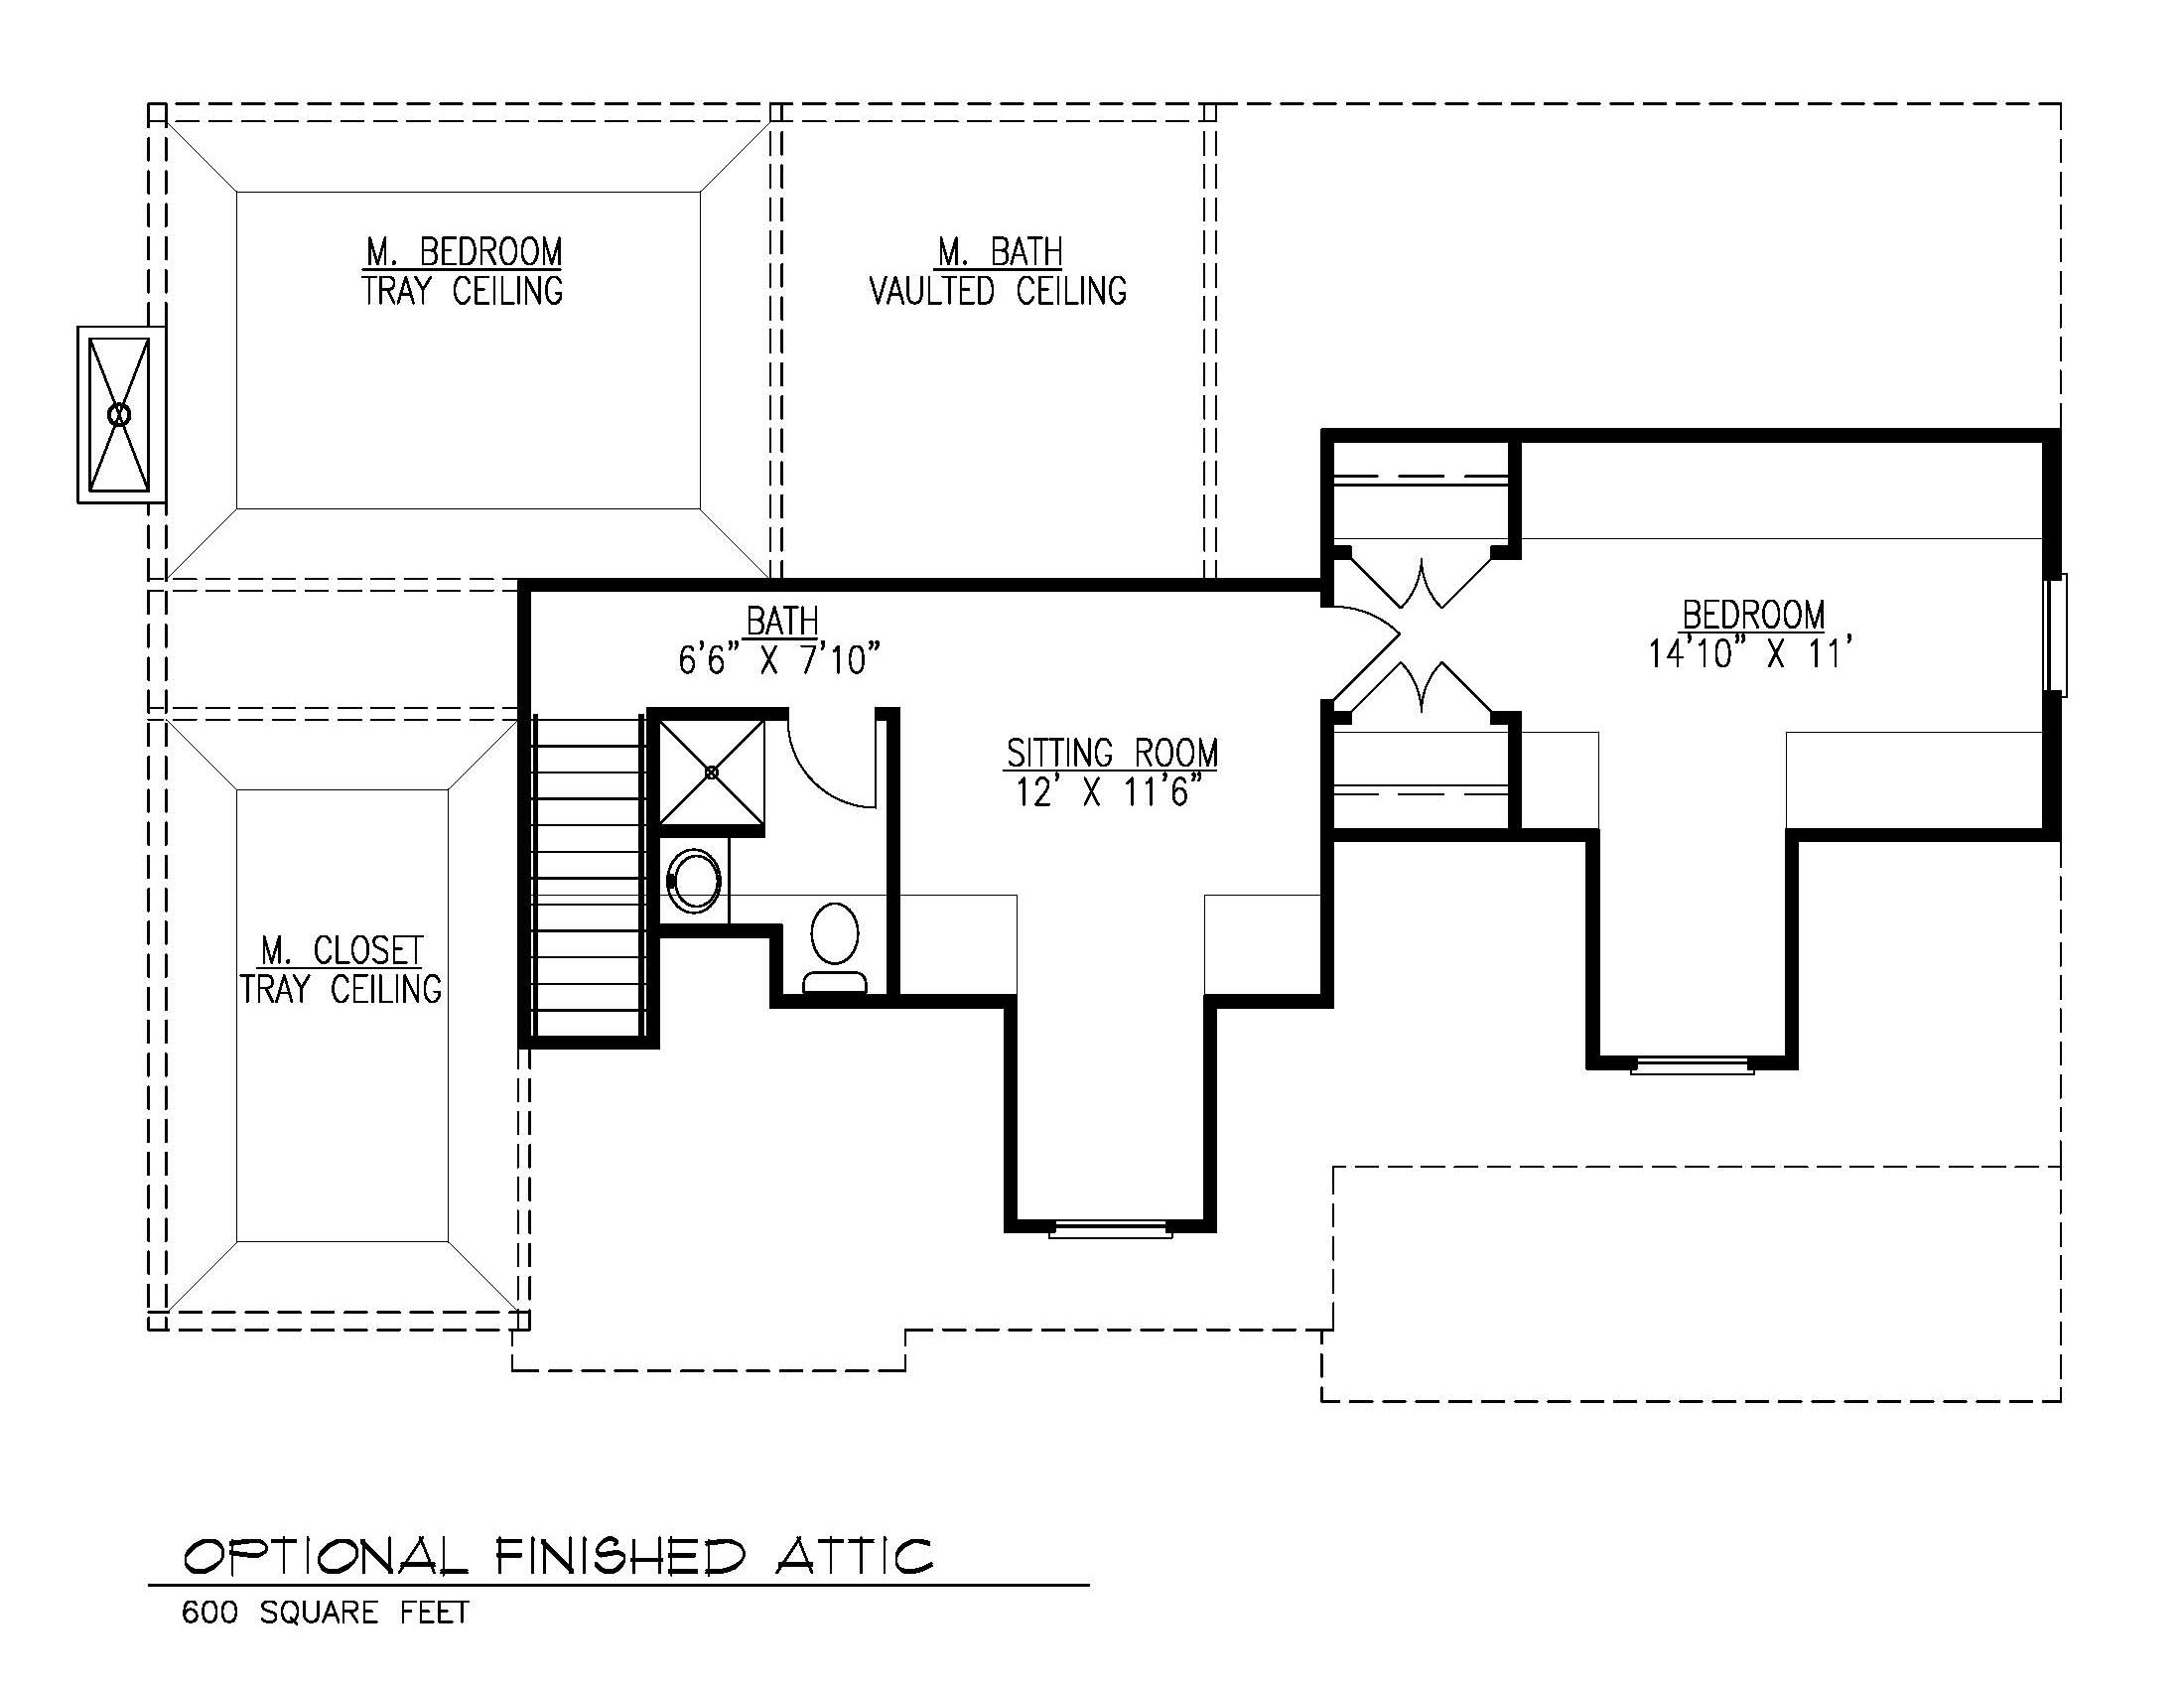 Attic-Floor-Plan-e1546623660887 Home Alone Floor Plan Attic on home alone all grown up, home alone neighborhood, home alone guy, home alone bathroom, home alone actress, home alone kitchen, home alone chicago, home alone filthy animal, home alone dad, home alone three, home alone scenes, home alone kevin, home alone old man, home alone scream, home alone movie,